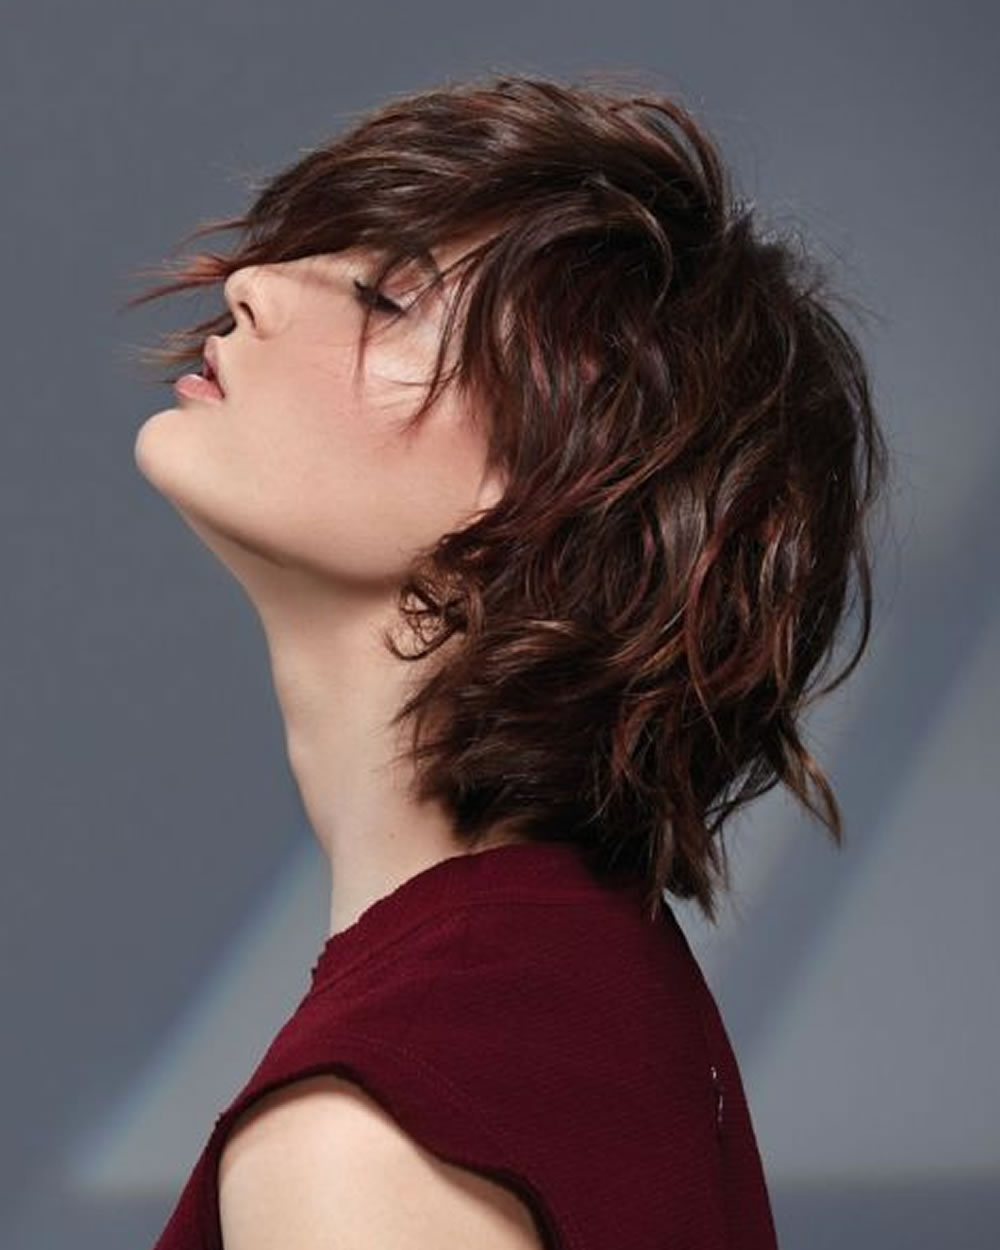 Hair Cuts : Bob Haircuts For Round Faces And Fine Hair Thick Female Regarding Short Haircuts For Round Face Women (View 11 of 25)